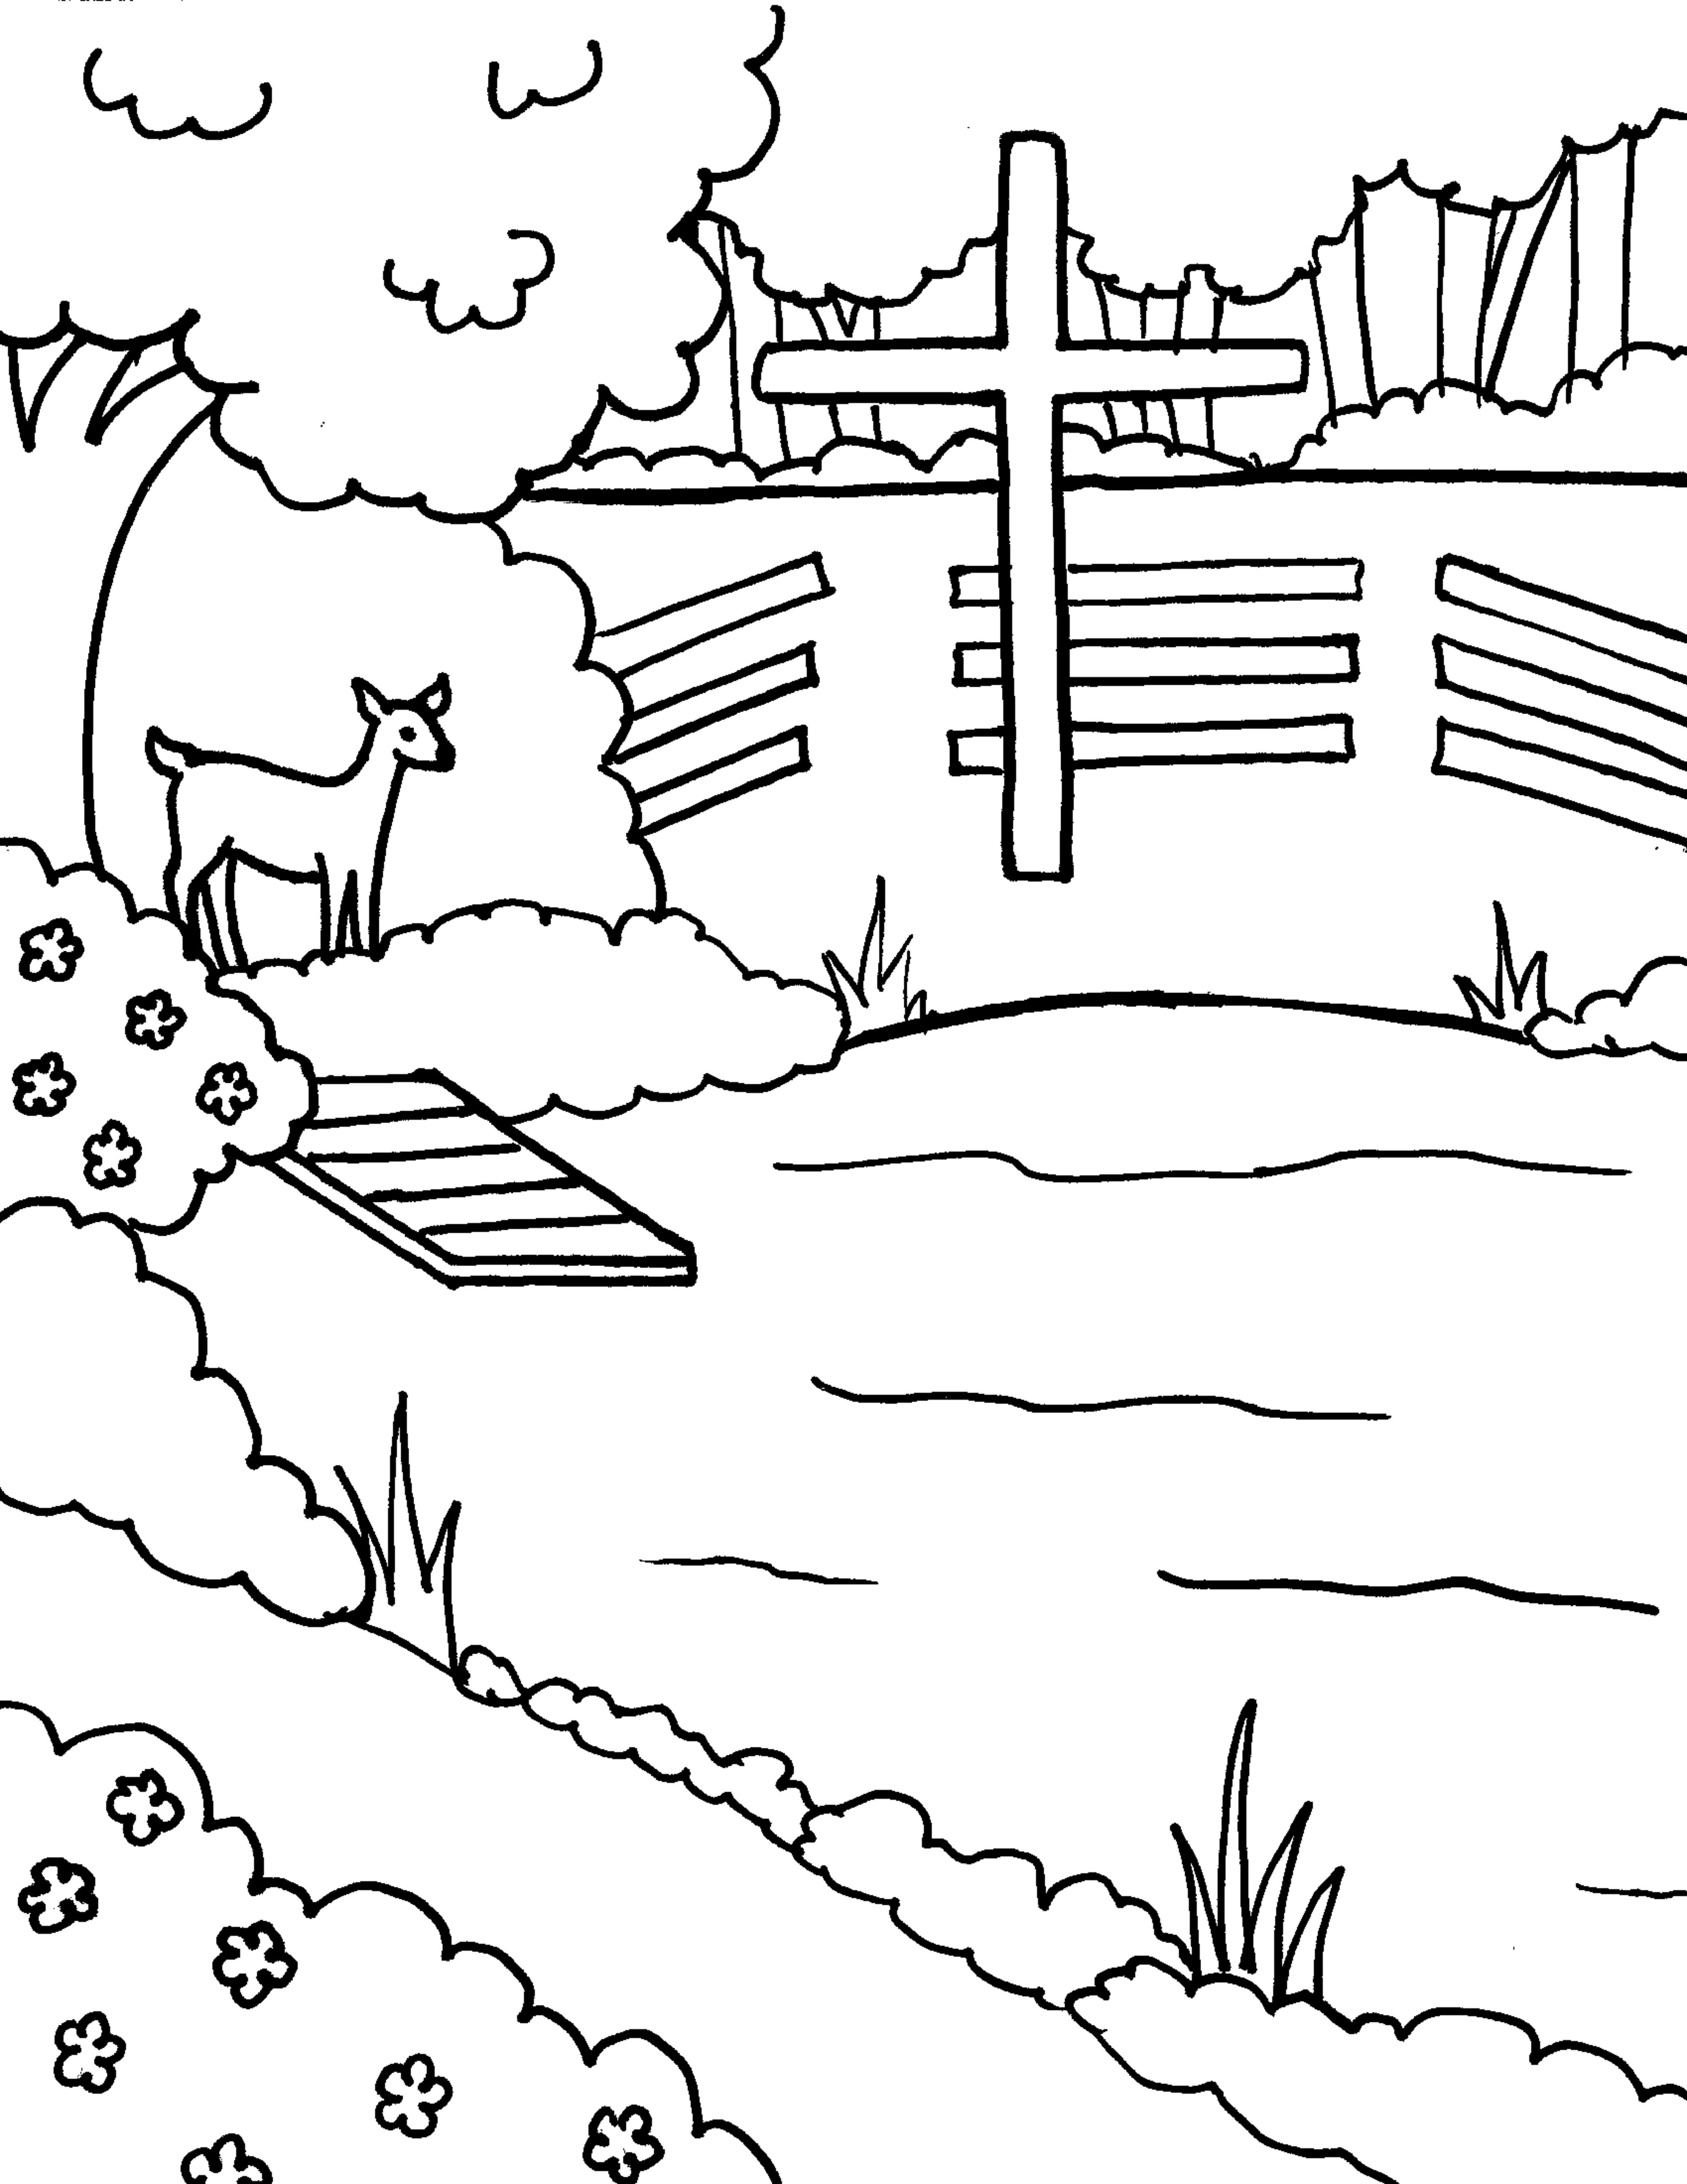 Lakeside Chapel Coloring Page (JPG)